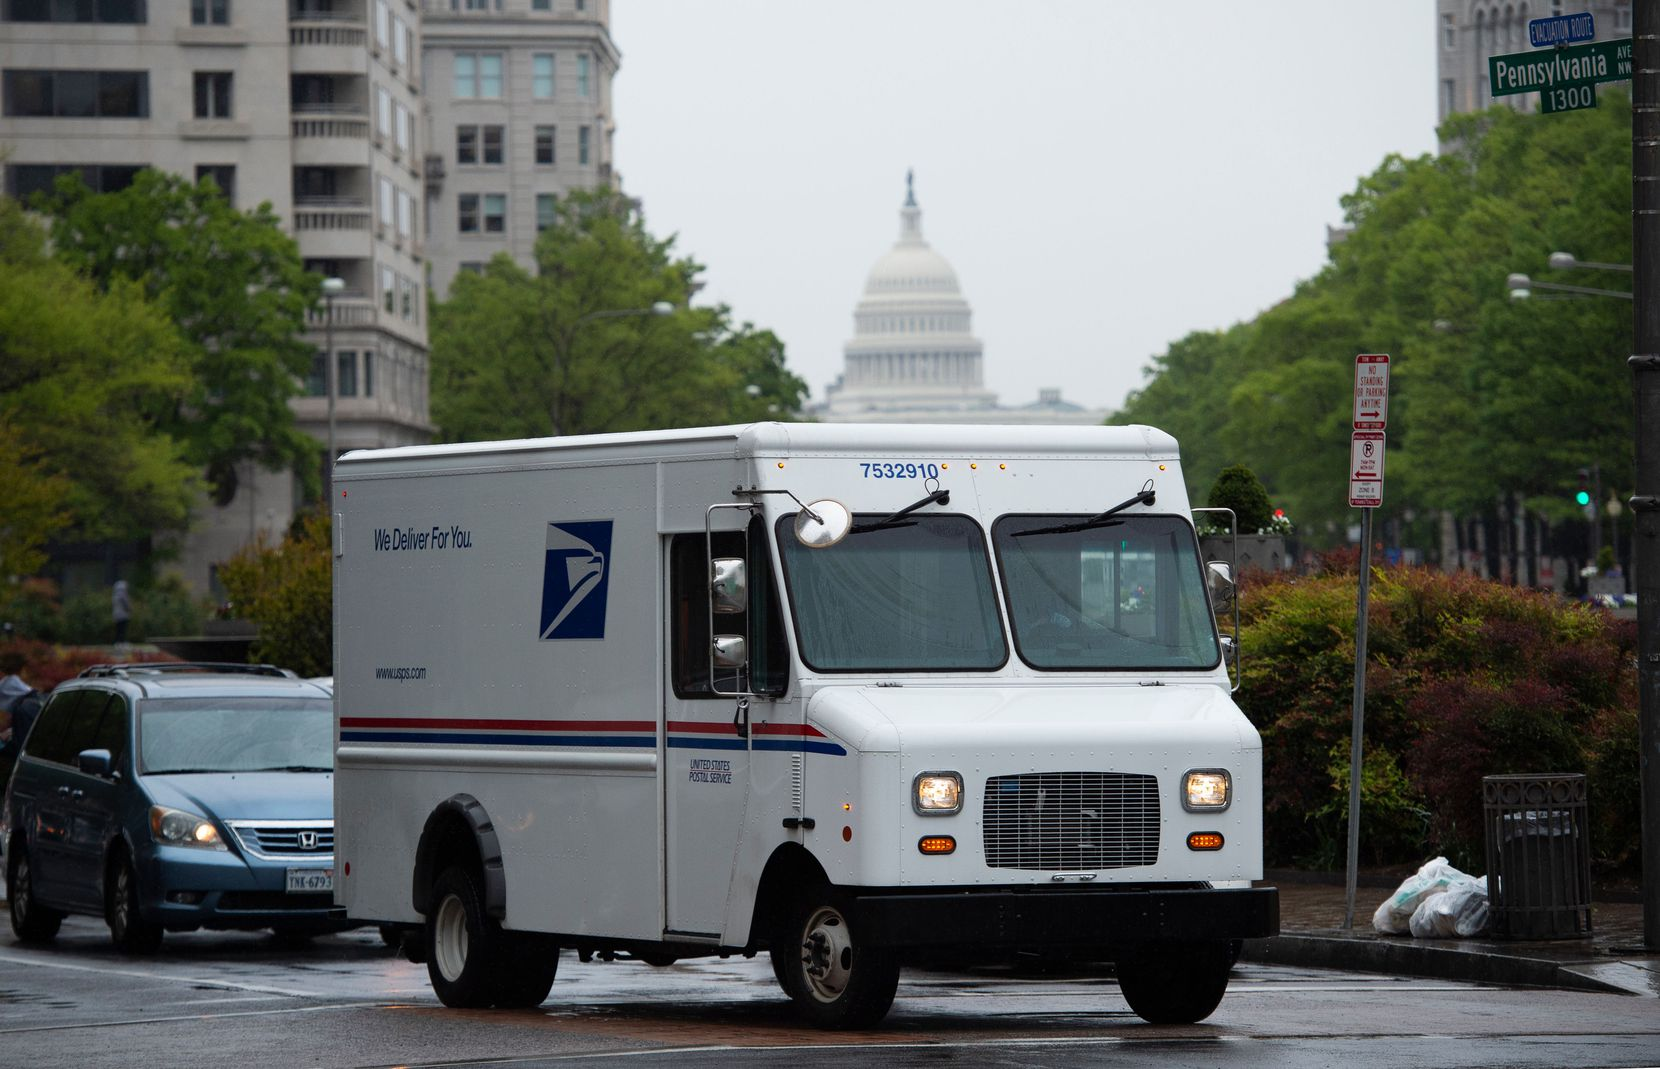 A U.S. Postal Service truck drives down Pennsylvania Avenue in Washington, D.C. on April 23.